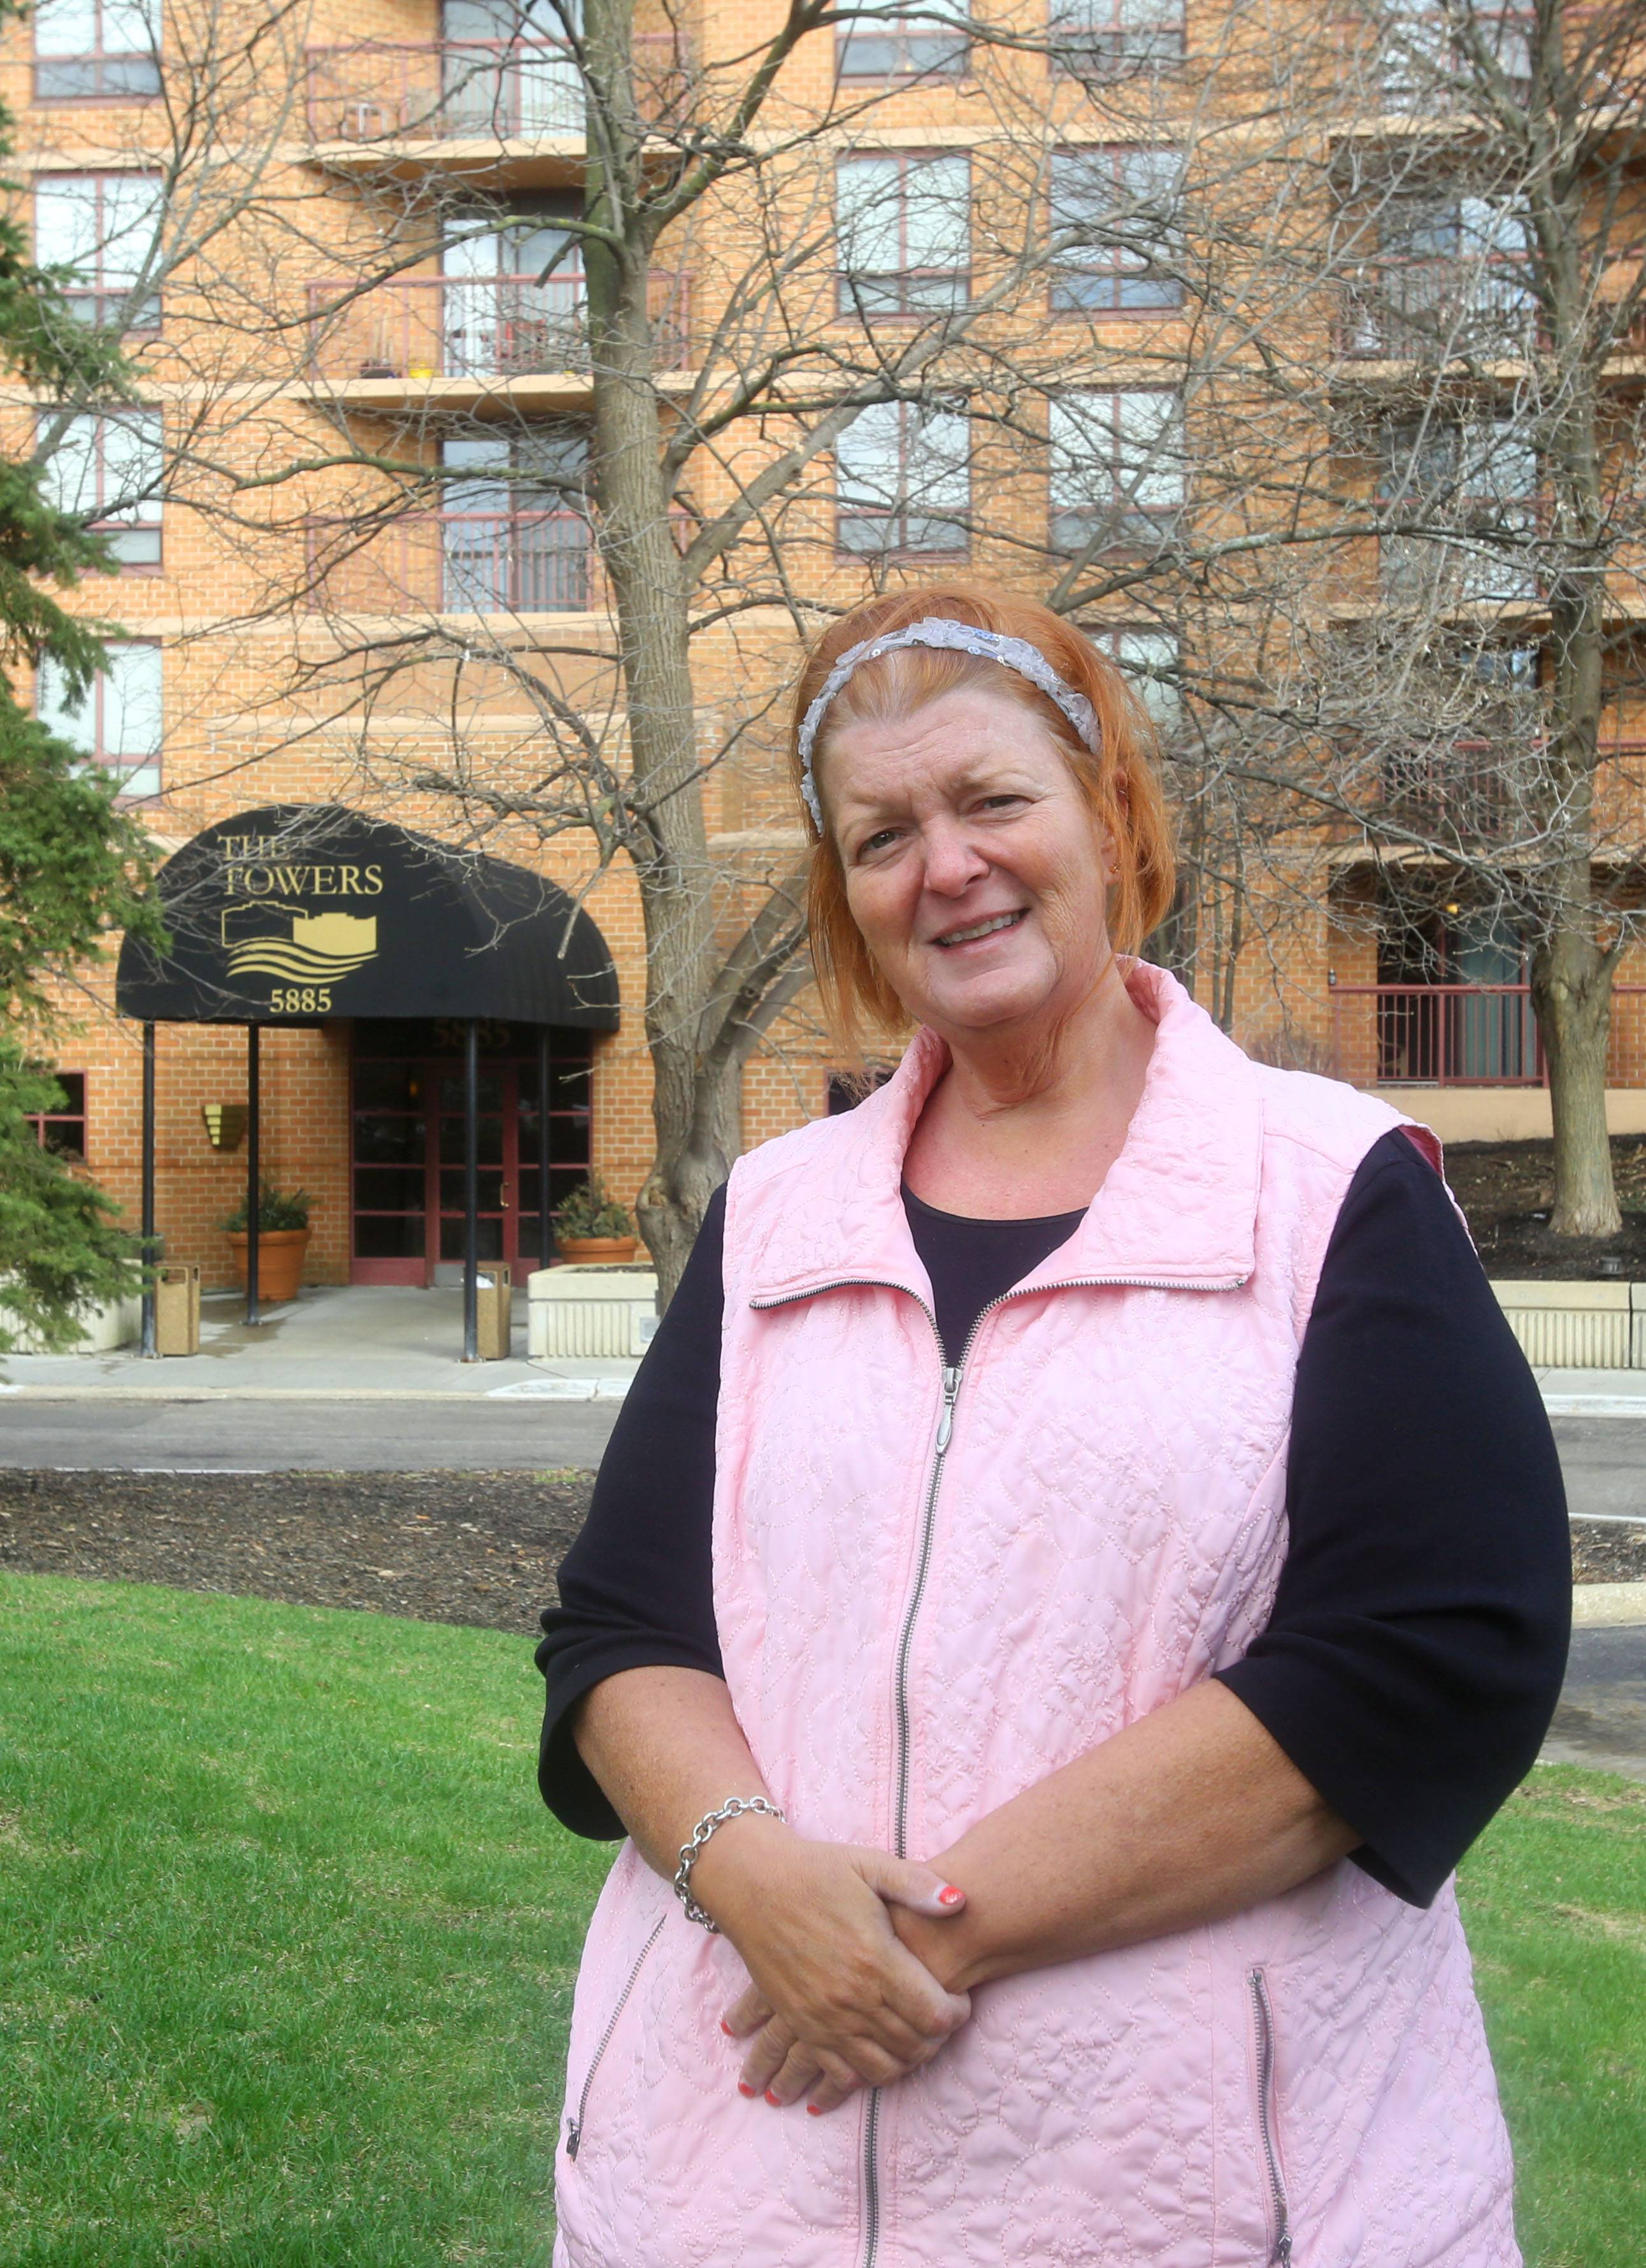 Debra Schulz of Lisle was among residents of about 475 units at the Towers at Four Lakes apartment complex who were displaced for two months last spring following flooding that damaged the electrical system that powered the buildings.